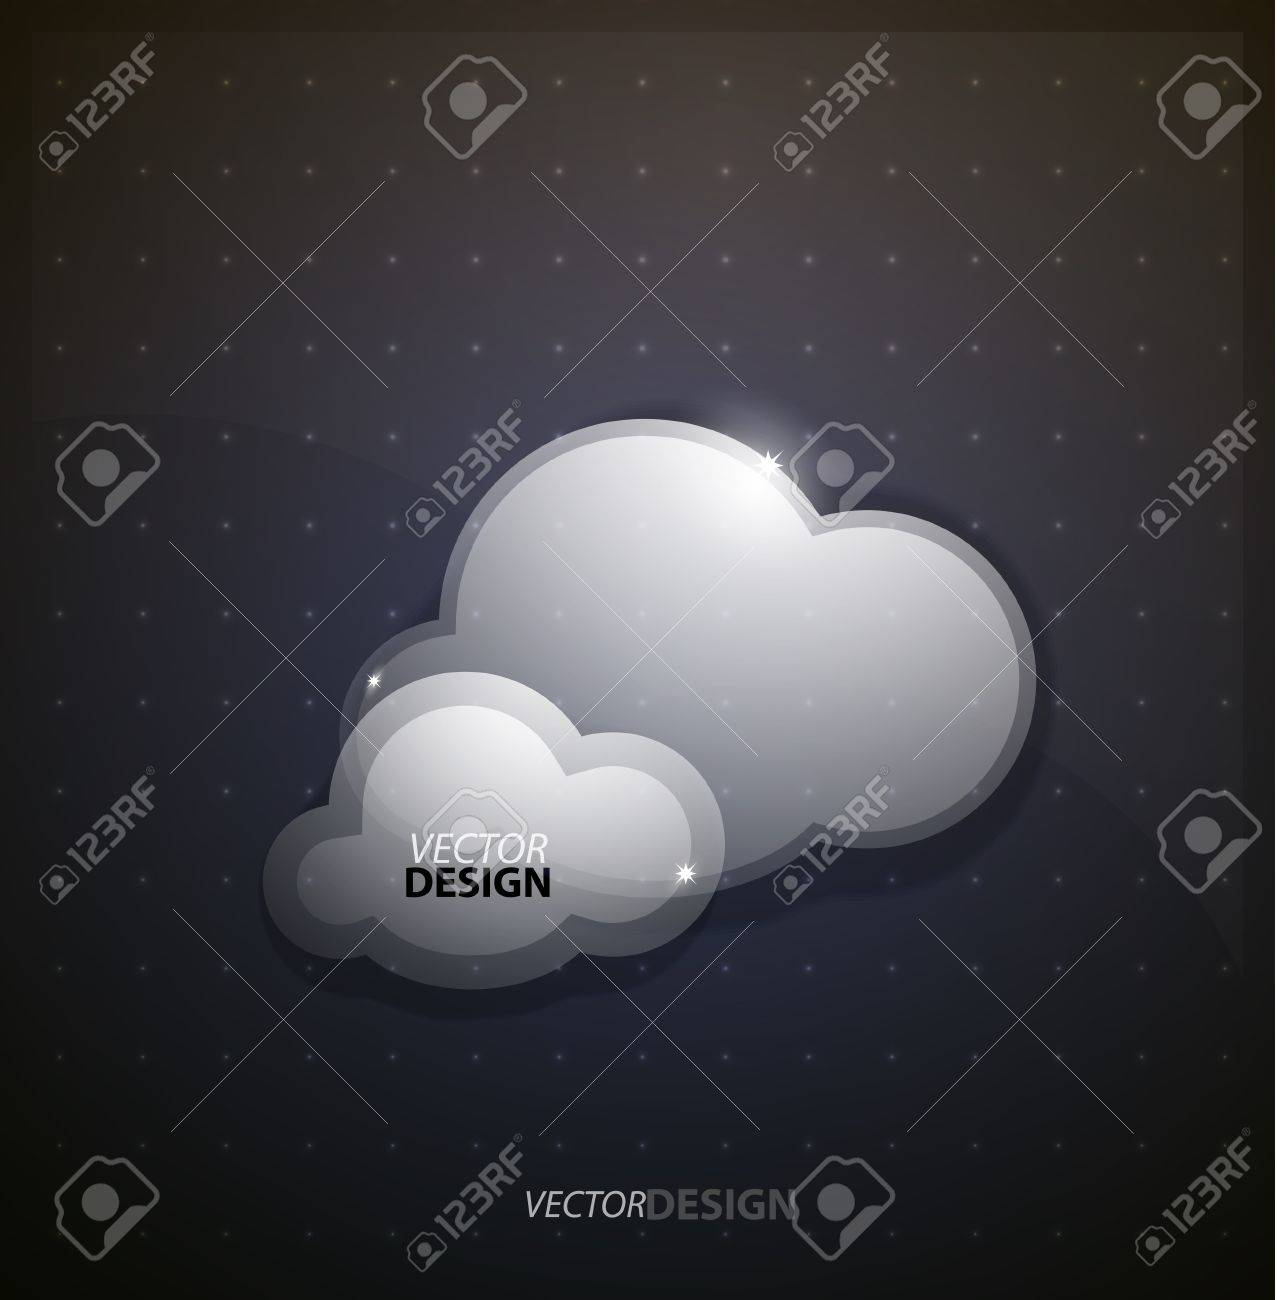 Techno clouds background Stock Photo - 13400827